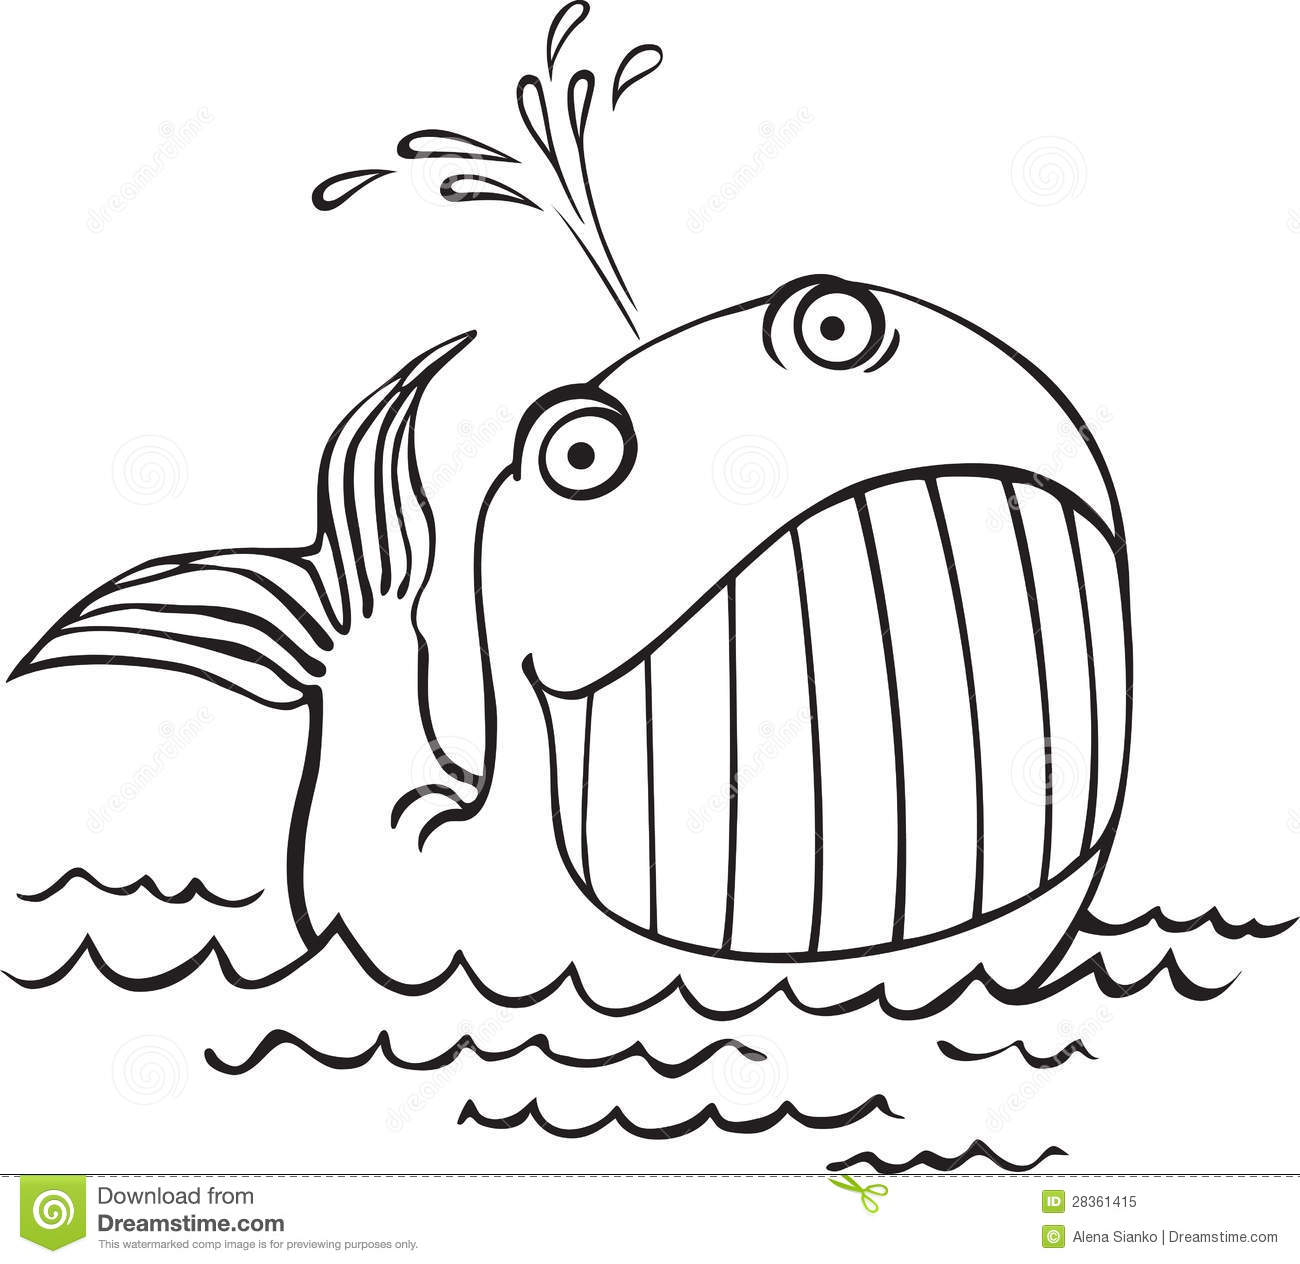 Out Line Drawing Of Animals : Outline drawing of a whale cartoon sea animals stock